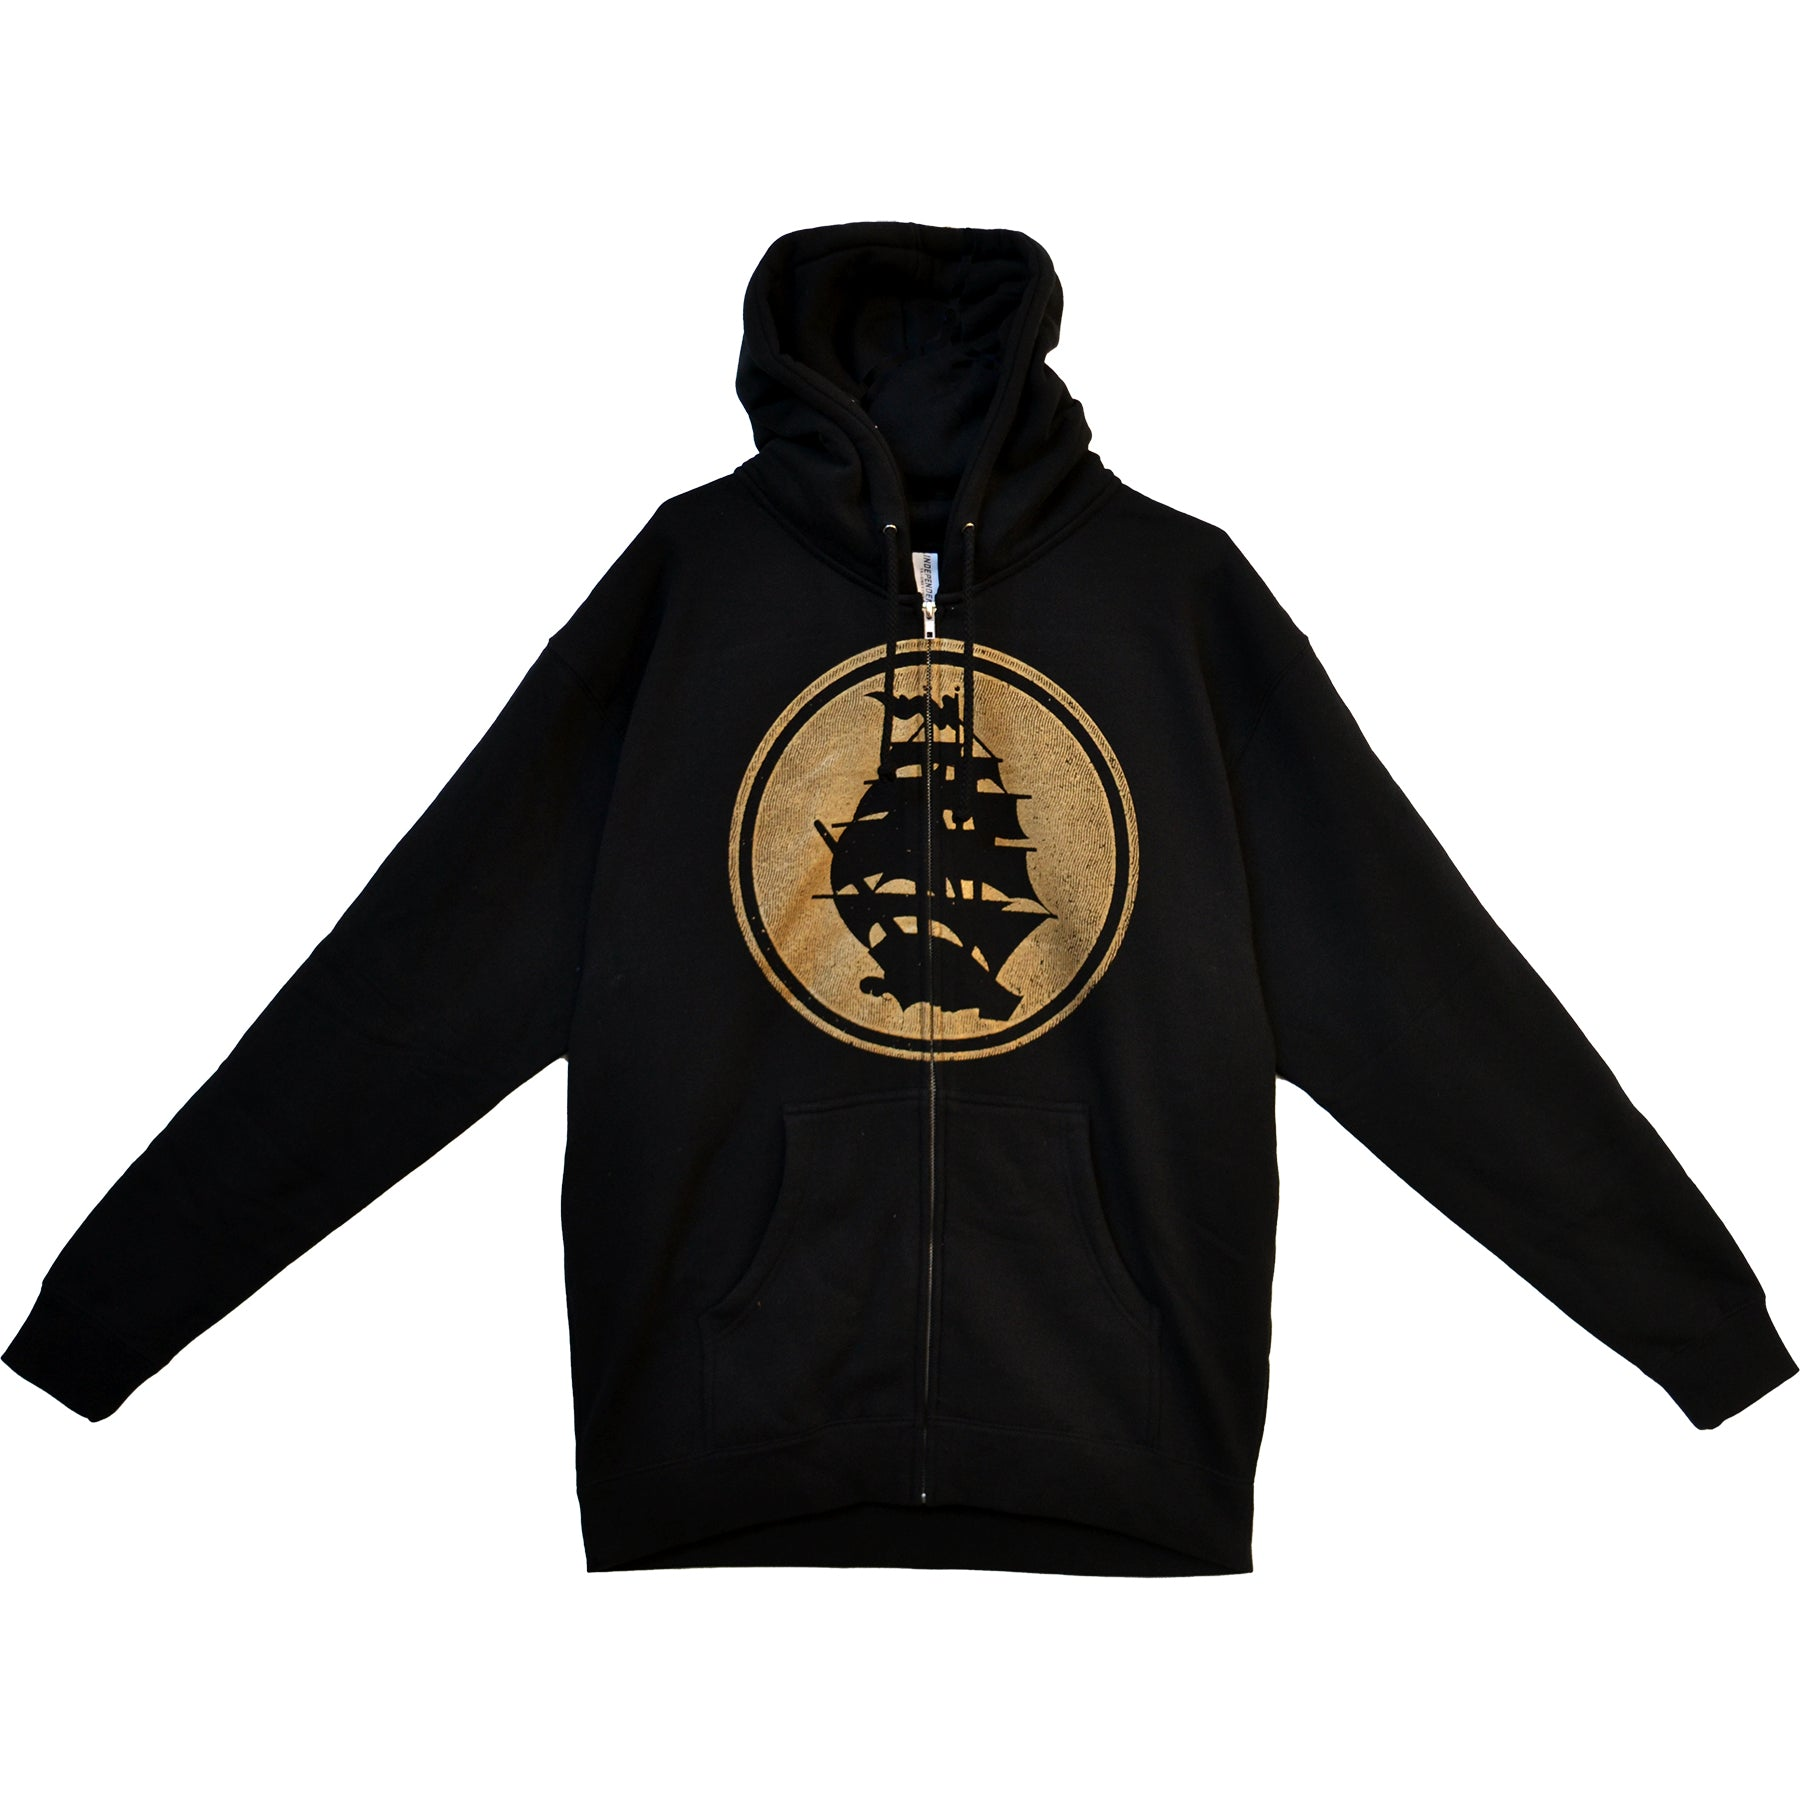 Pirates Press - Circle Logo - Black - Zip-Up Hoodie